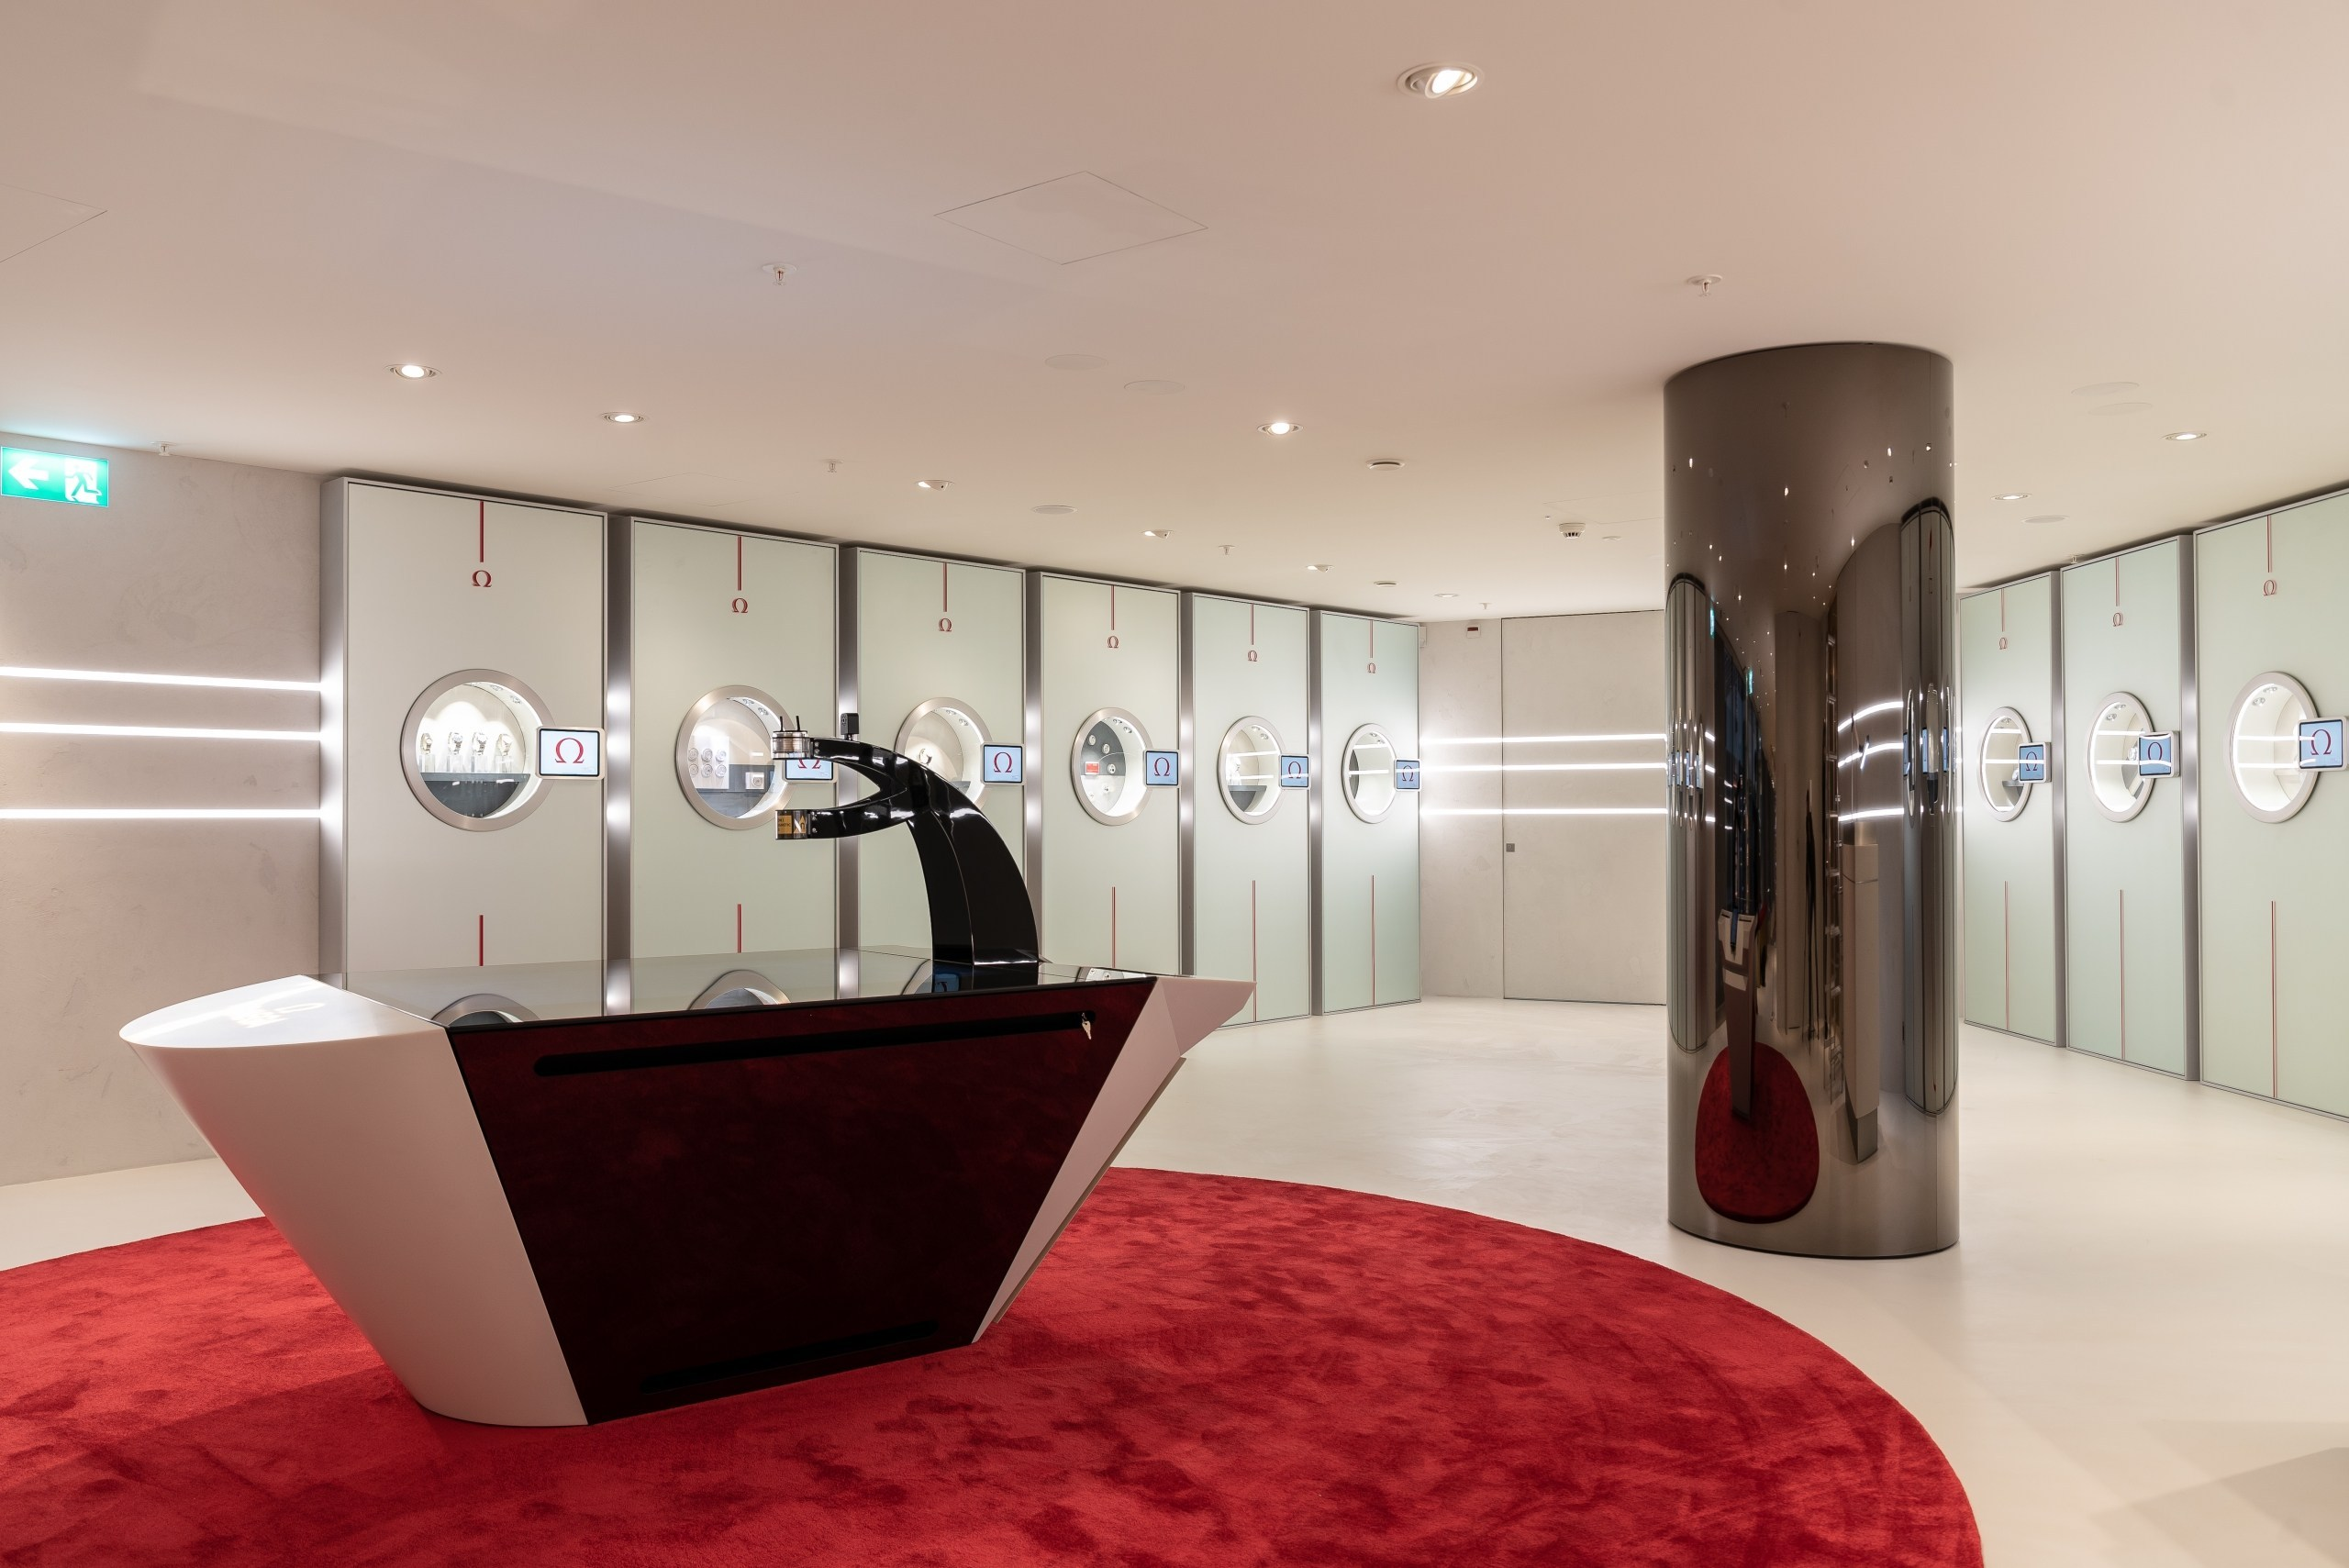 Omega-The-Circle-Zurich-interior-2-scaled.jpg